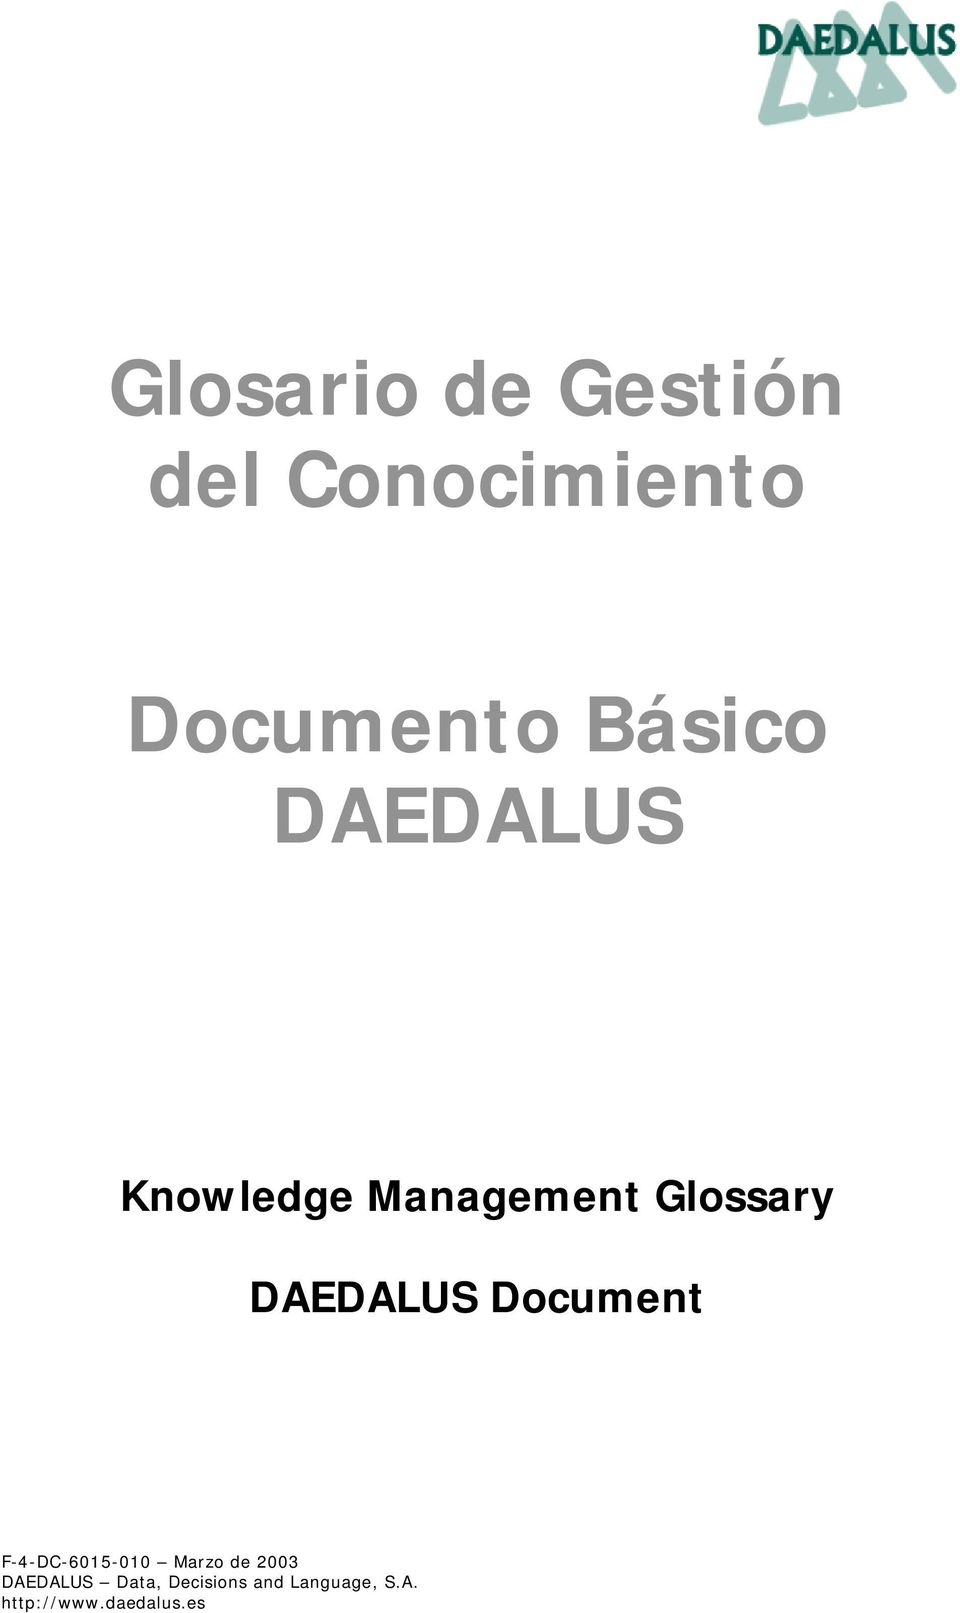 DAEDALUS Document F-4-DC-6015-010 Marzo de 2003